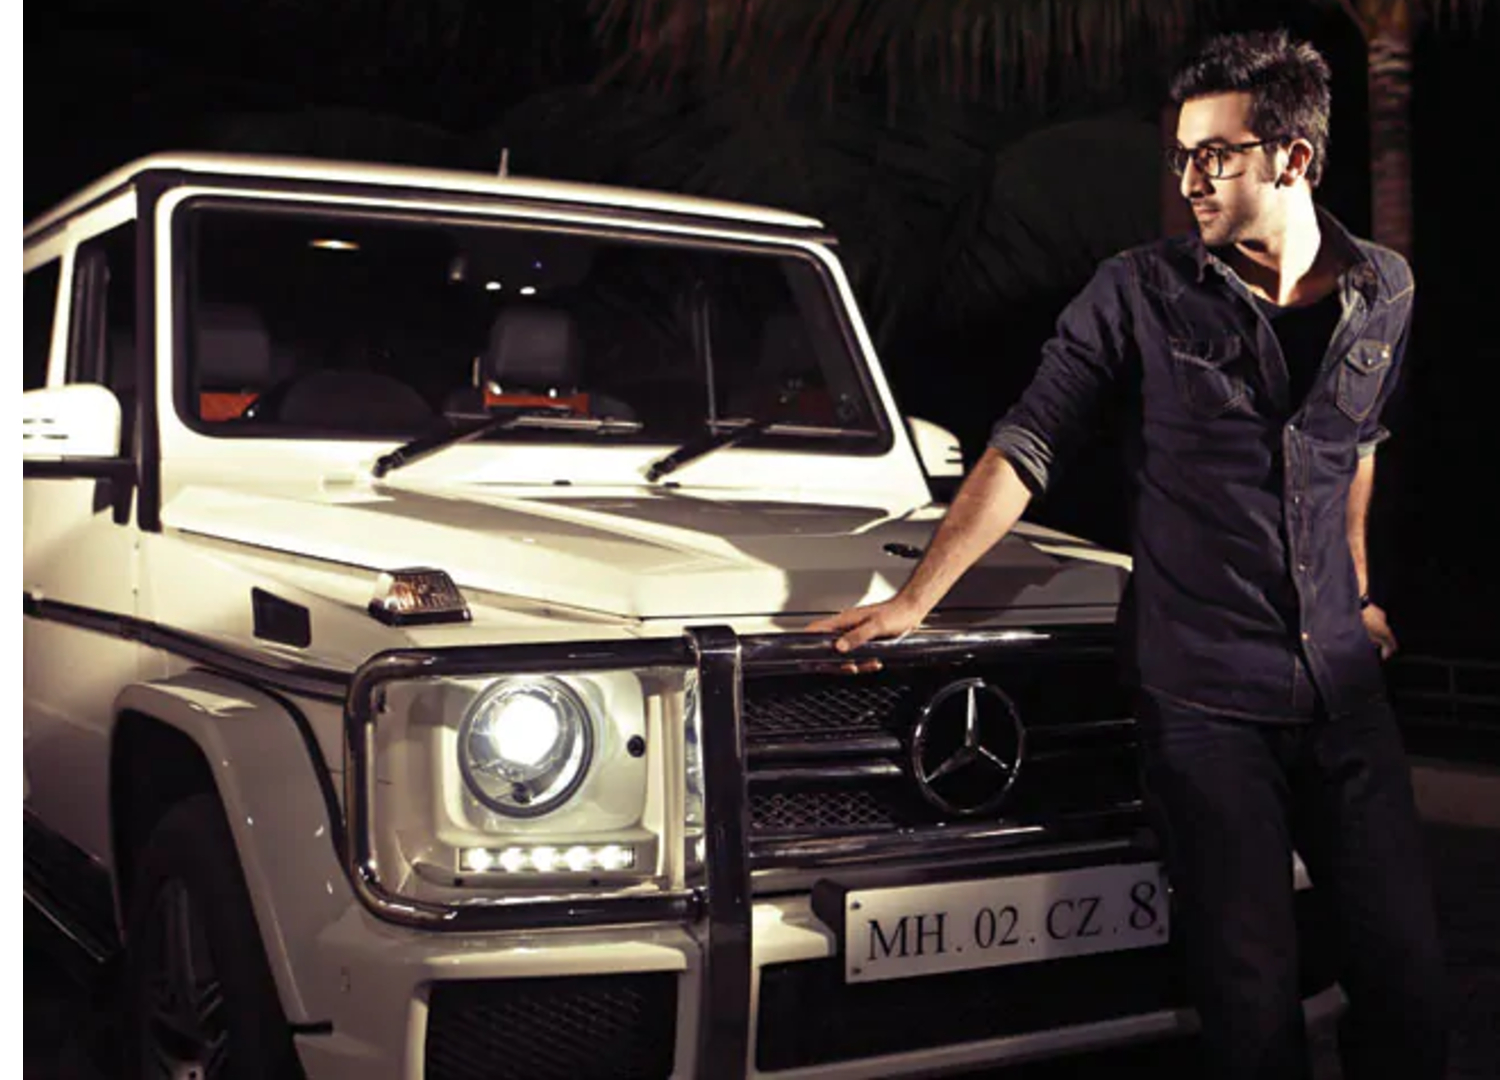 off-road vehicles of popular Indians